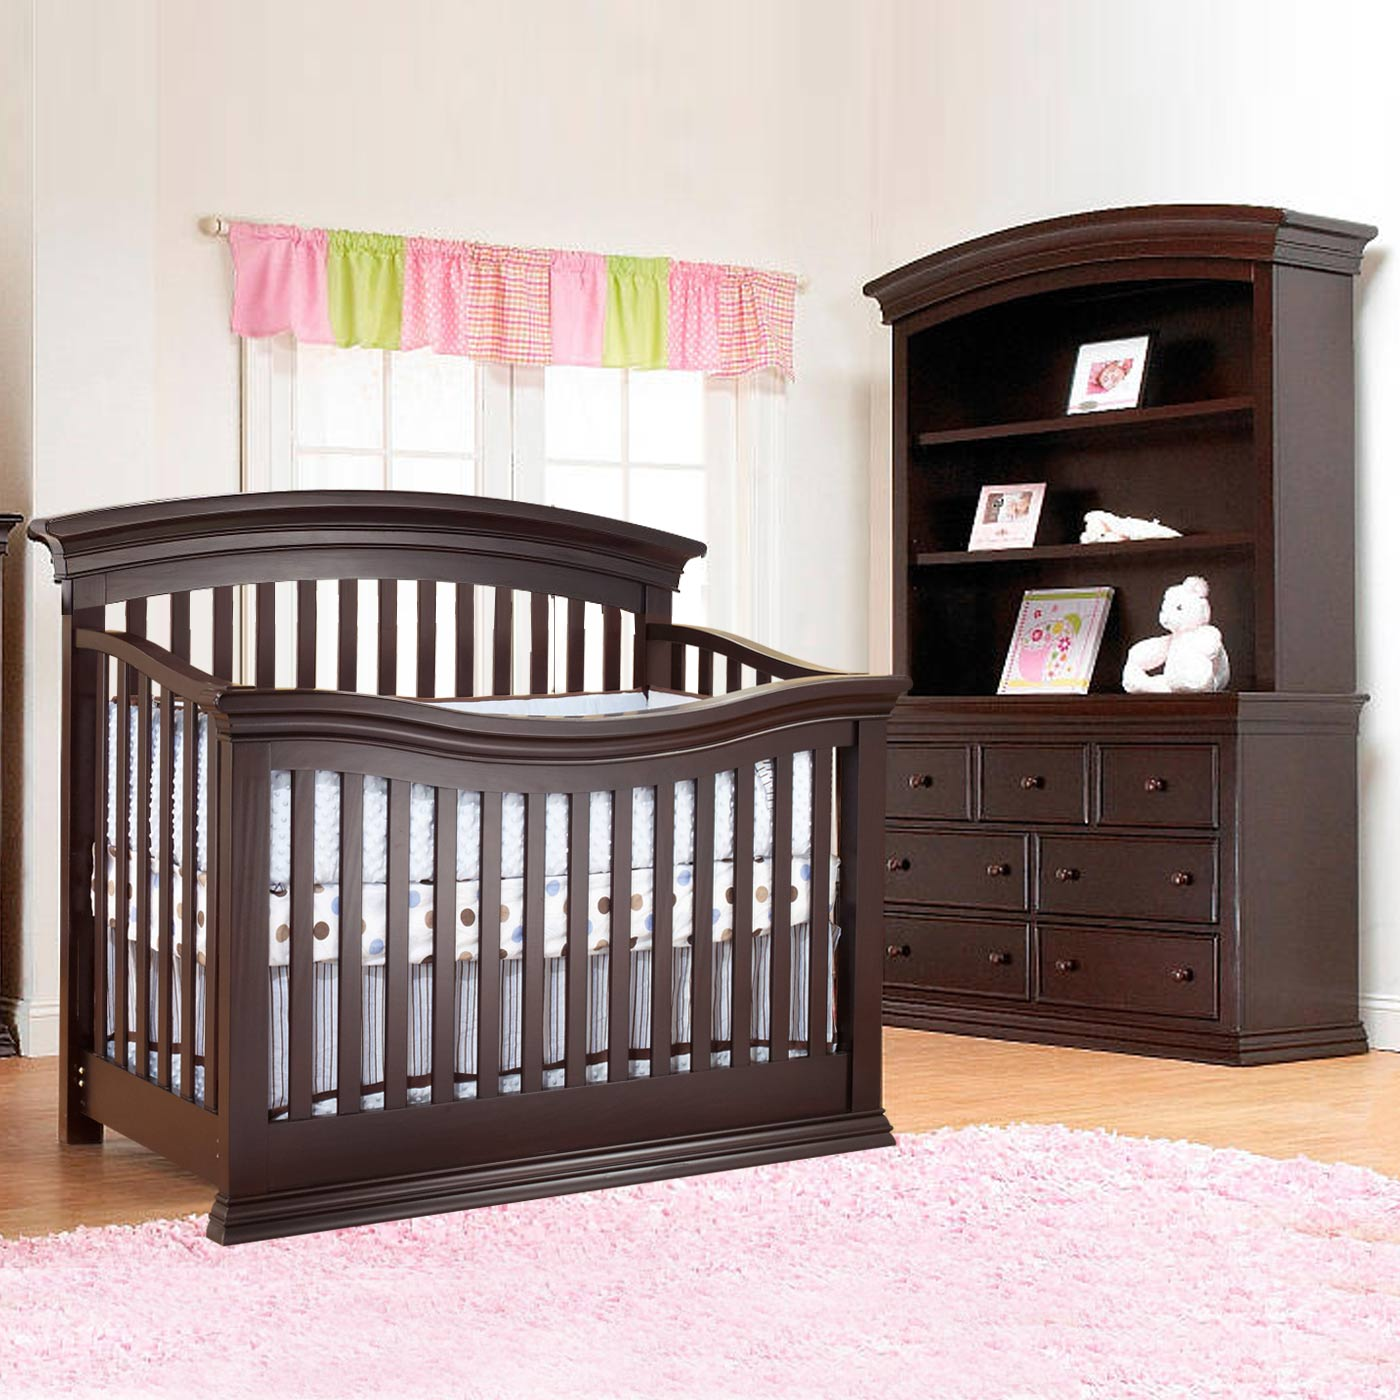 Sorelle Verona 3 Piece Nursery Set 4 In 1 Convertible Crib Double Dresser And Hutch Espresso Free